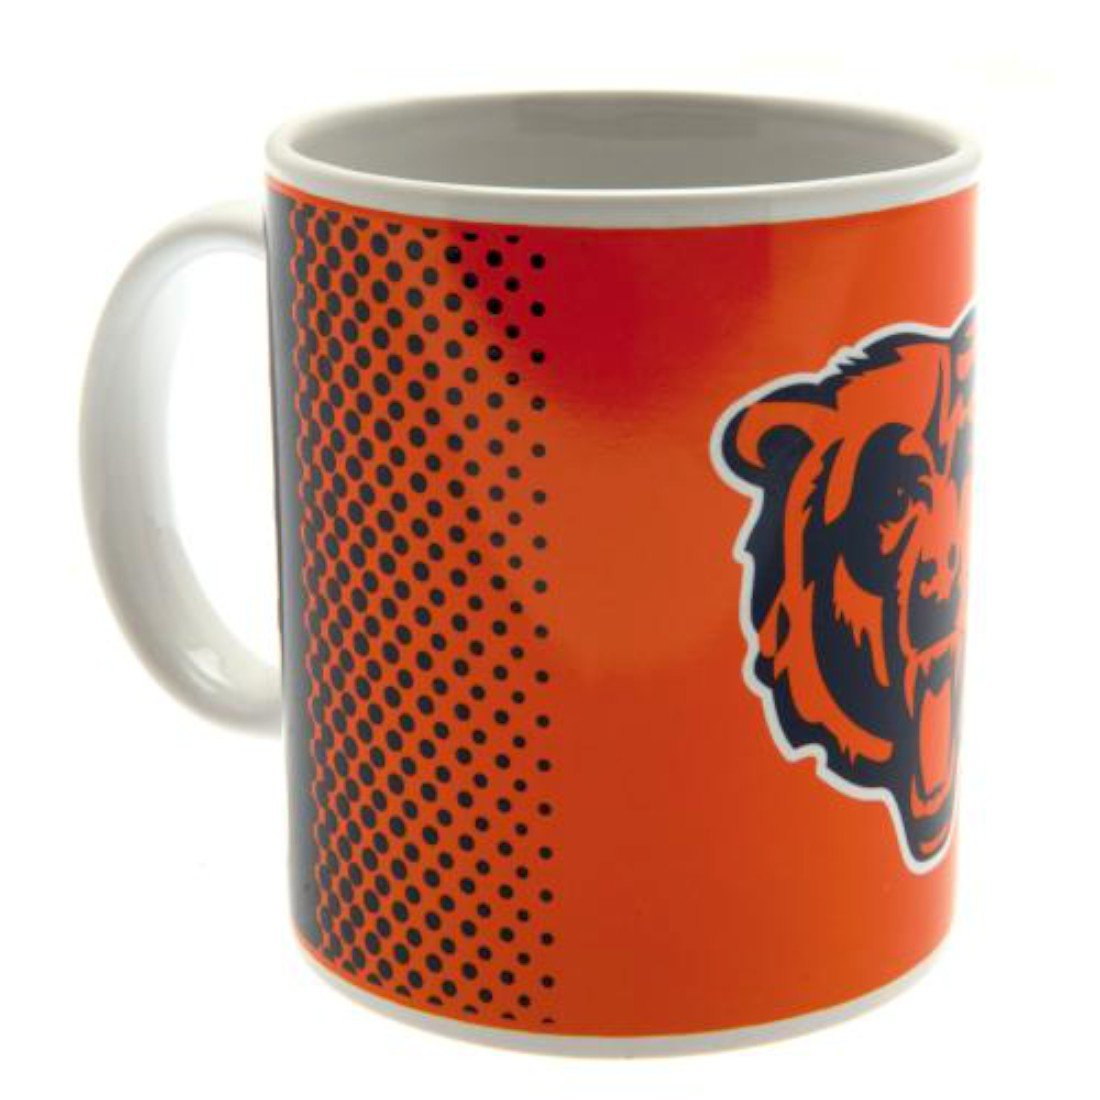 Chicago Bears Mug Fd Ceramic Mug Approx 9cm Tall, 8cm In Diameter 11 Oz In Printed Box Official